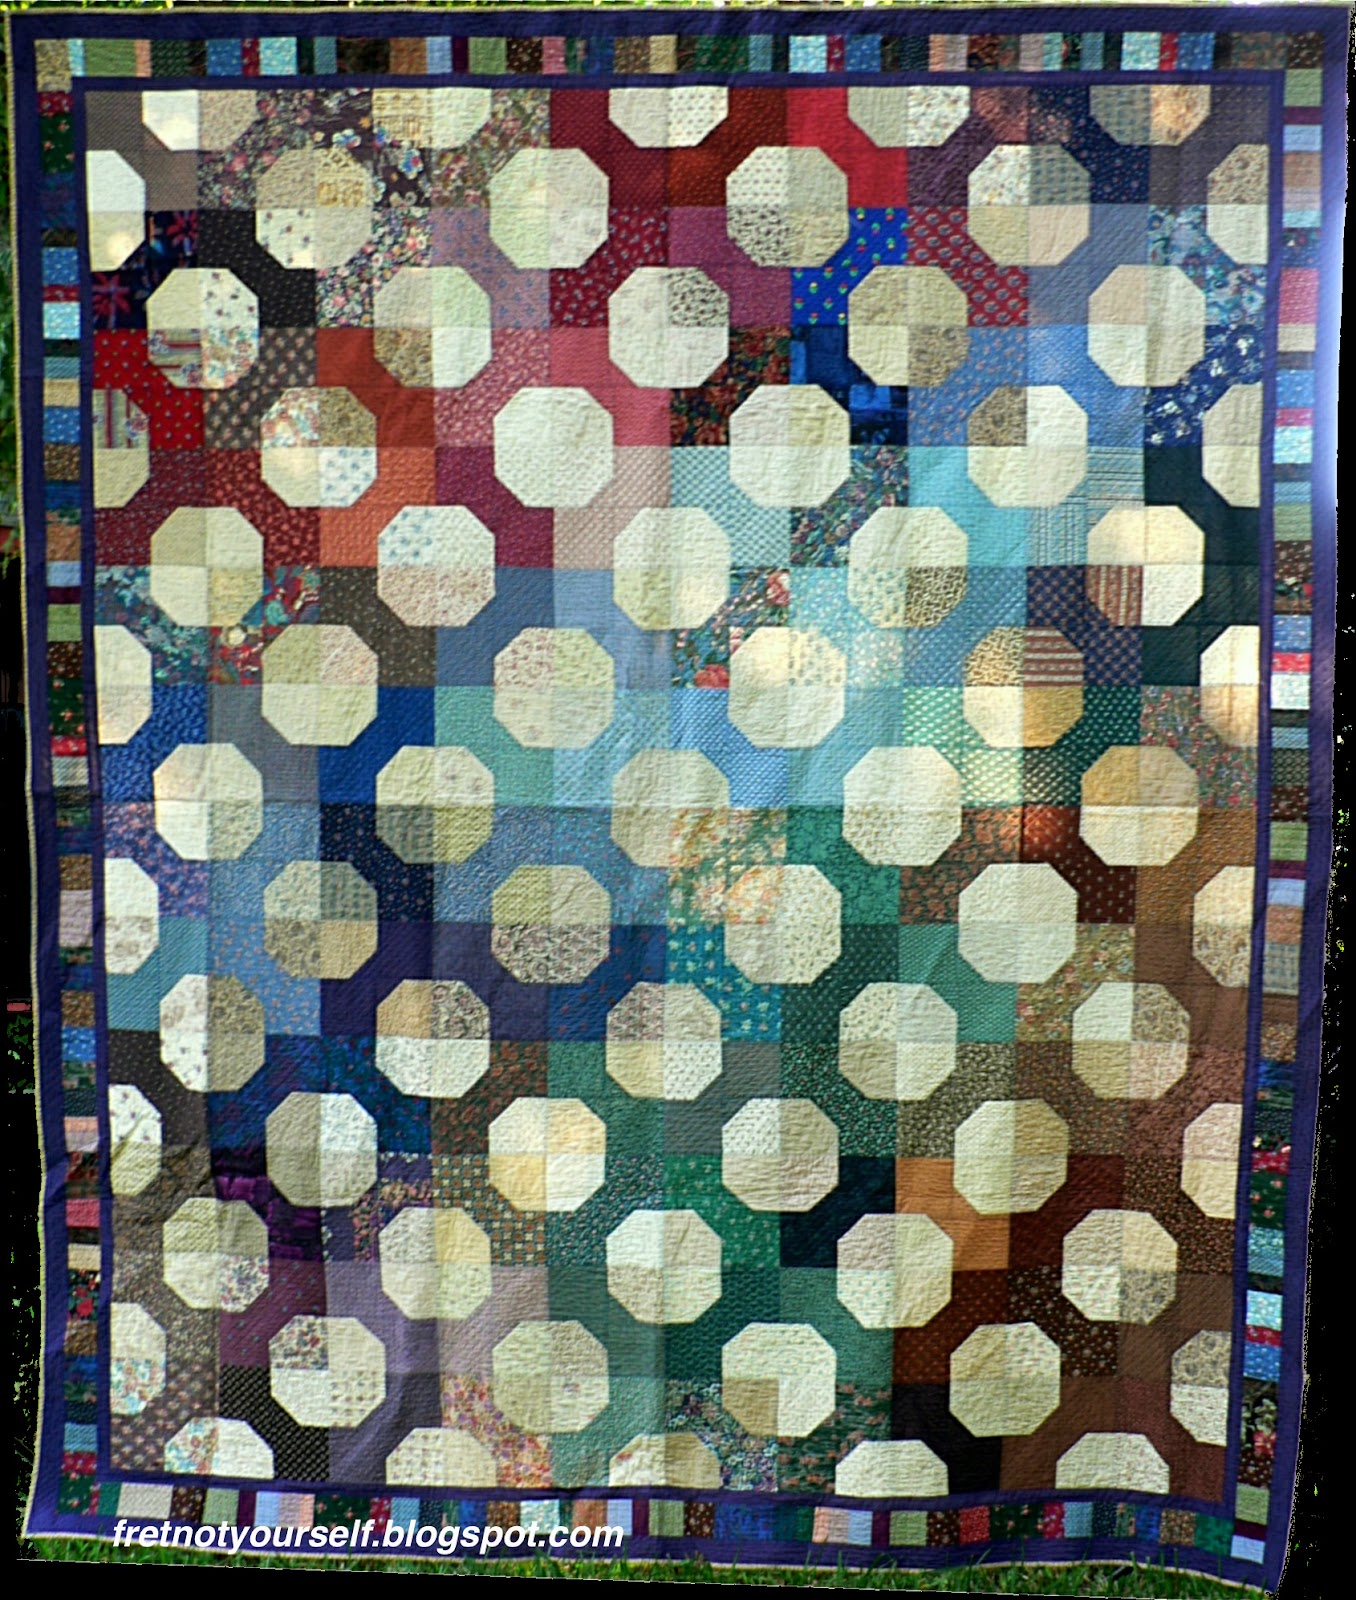 The Bow Tie blocks are grouped by similar colors across the surface of this queen-sized quilt.